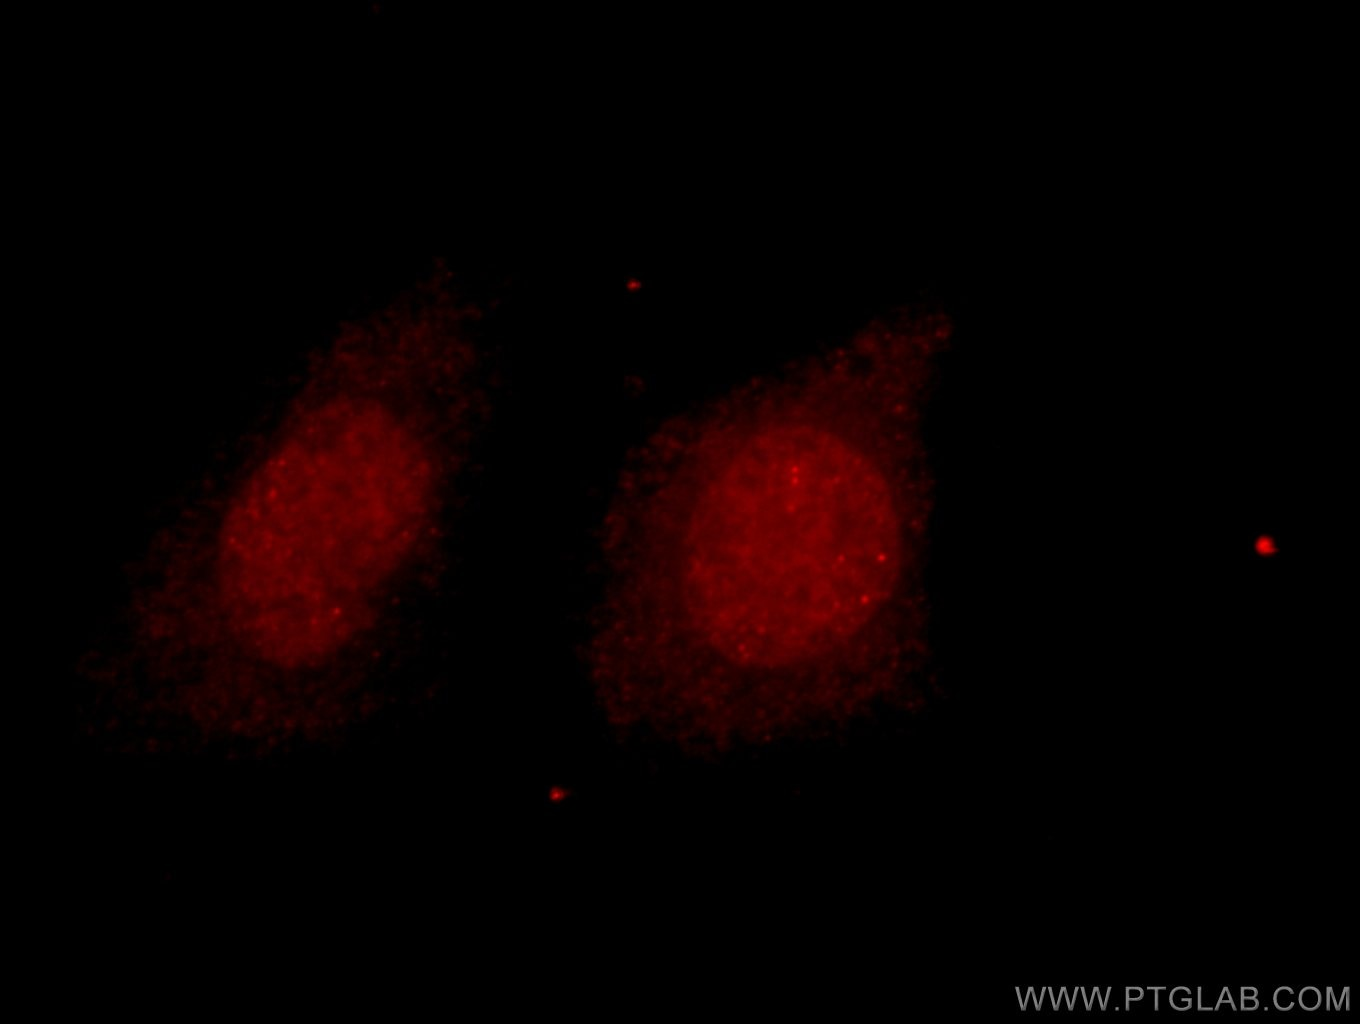 IF Staining of HeLa using 16152-1-AP